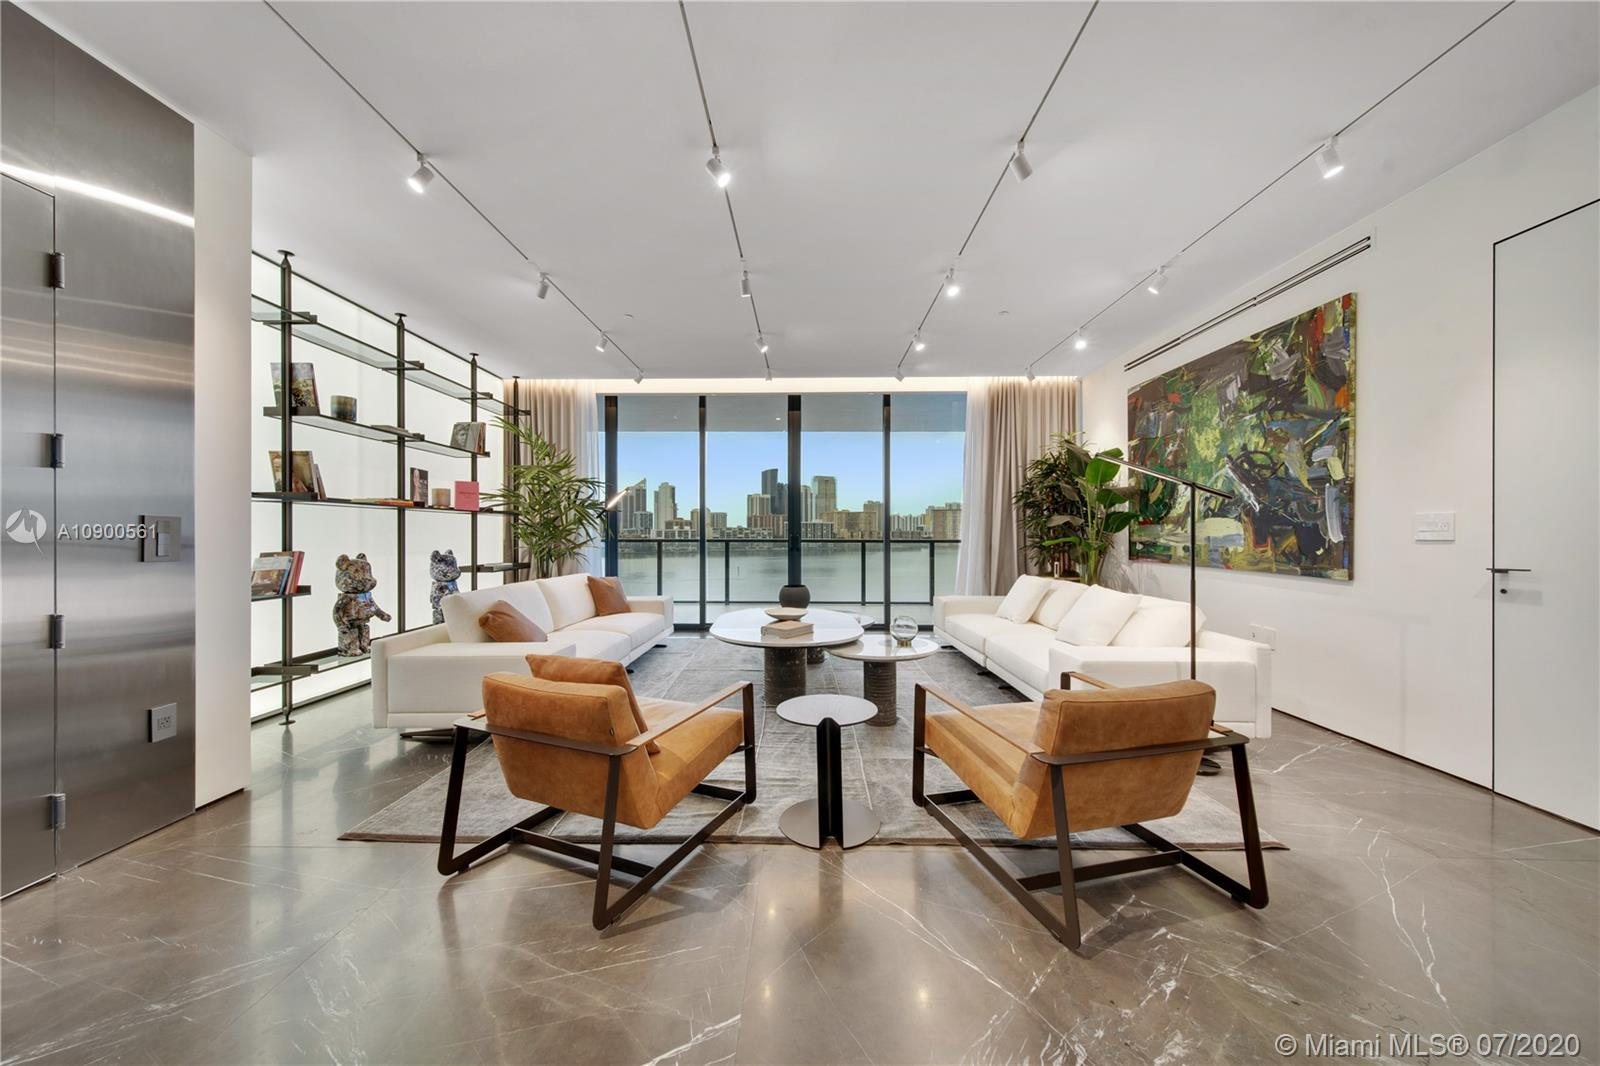 Explore this impressive, turnkey unit at Prive Aventura. Three bedrooms + four-bath + maids quarters with bathroom attached + powder room. Finest Italian furniture and finishes: imported Italian furniture, Rimadesio doors, Italian closets, custom made Italian panels - just to name a few. Rare Italian marble throughout the unit and wood flooring in the bedrooms. Many upgrades: improved kitchen with Miele appliances, all AC ducts upgraded to linear diffusers, dropped ceilings with LED lighting, blackouts, and custom window treatments throughout the unit. Don't forget to check out the virtual Video Tour. Call now to schedule a showing!